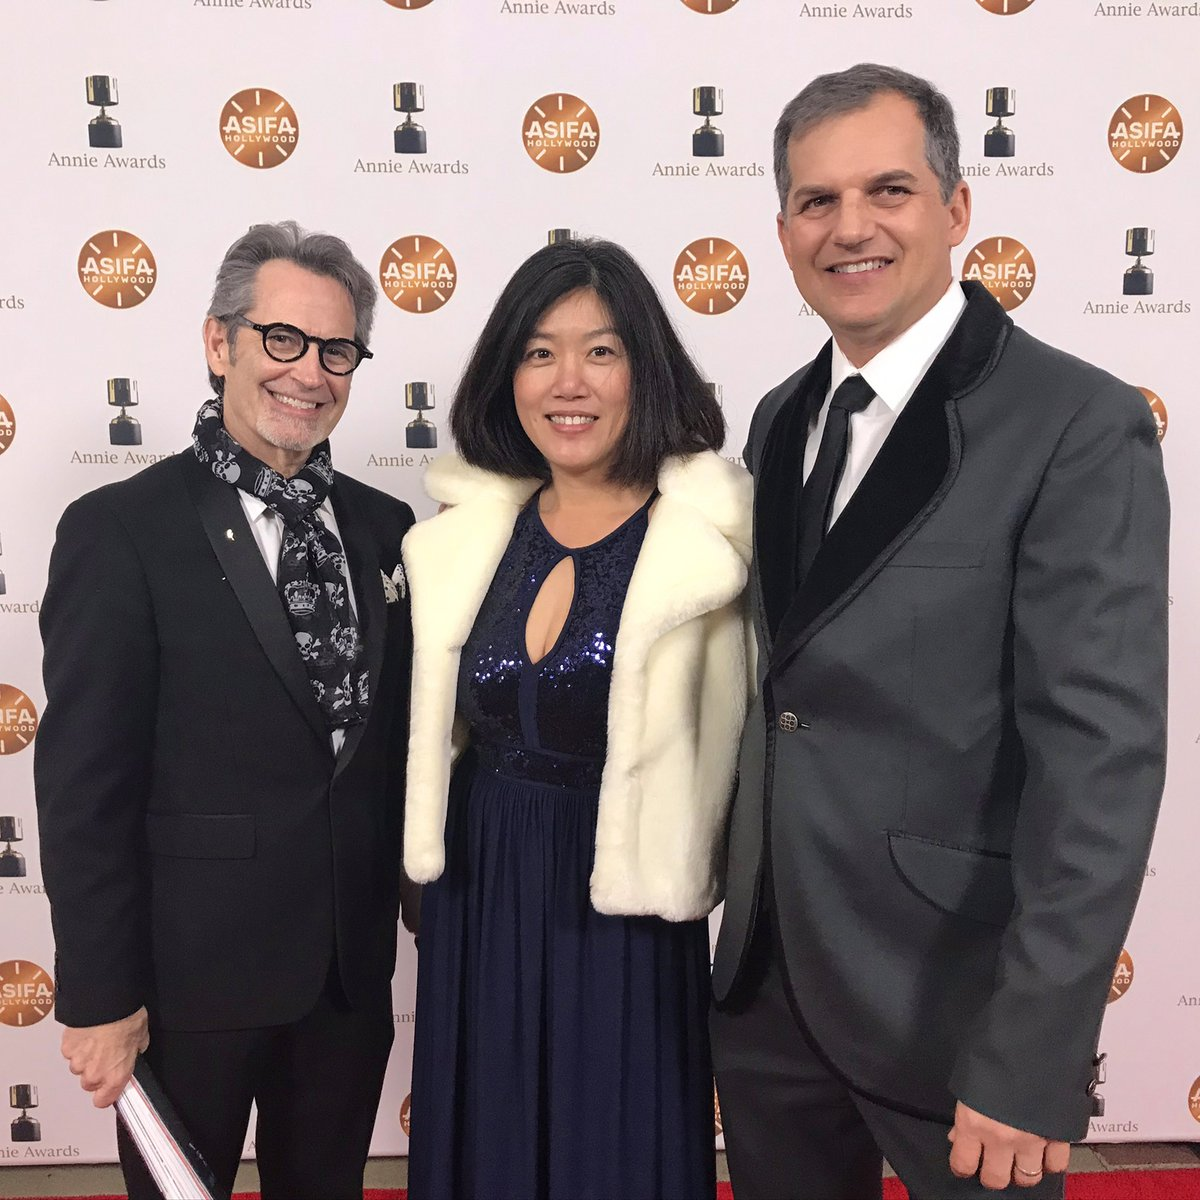 #nominees #annieawards #asifahollywood #animation #art #streaming #tv #film #redcarpet #showtime